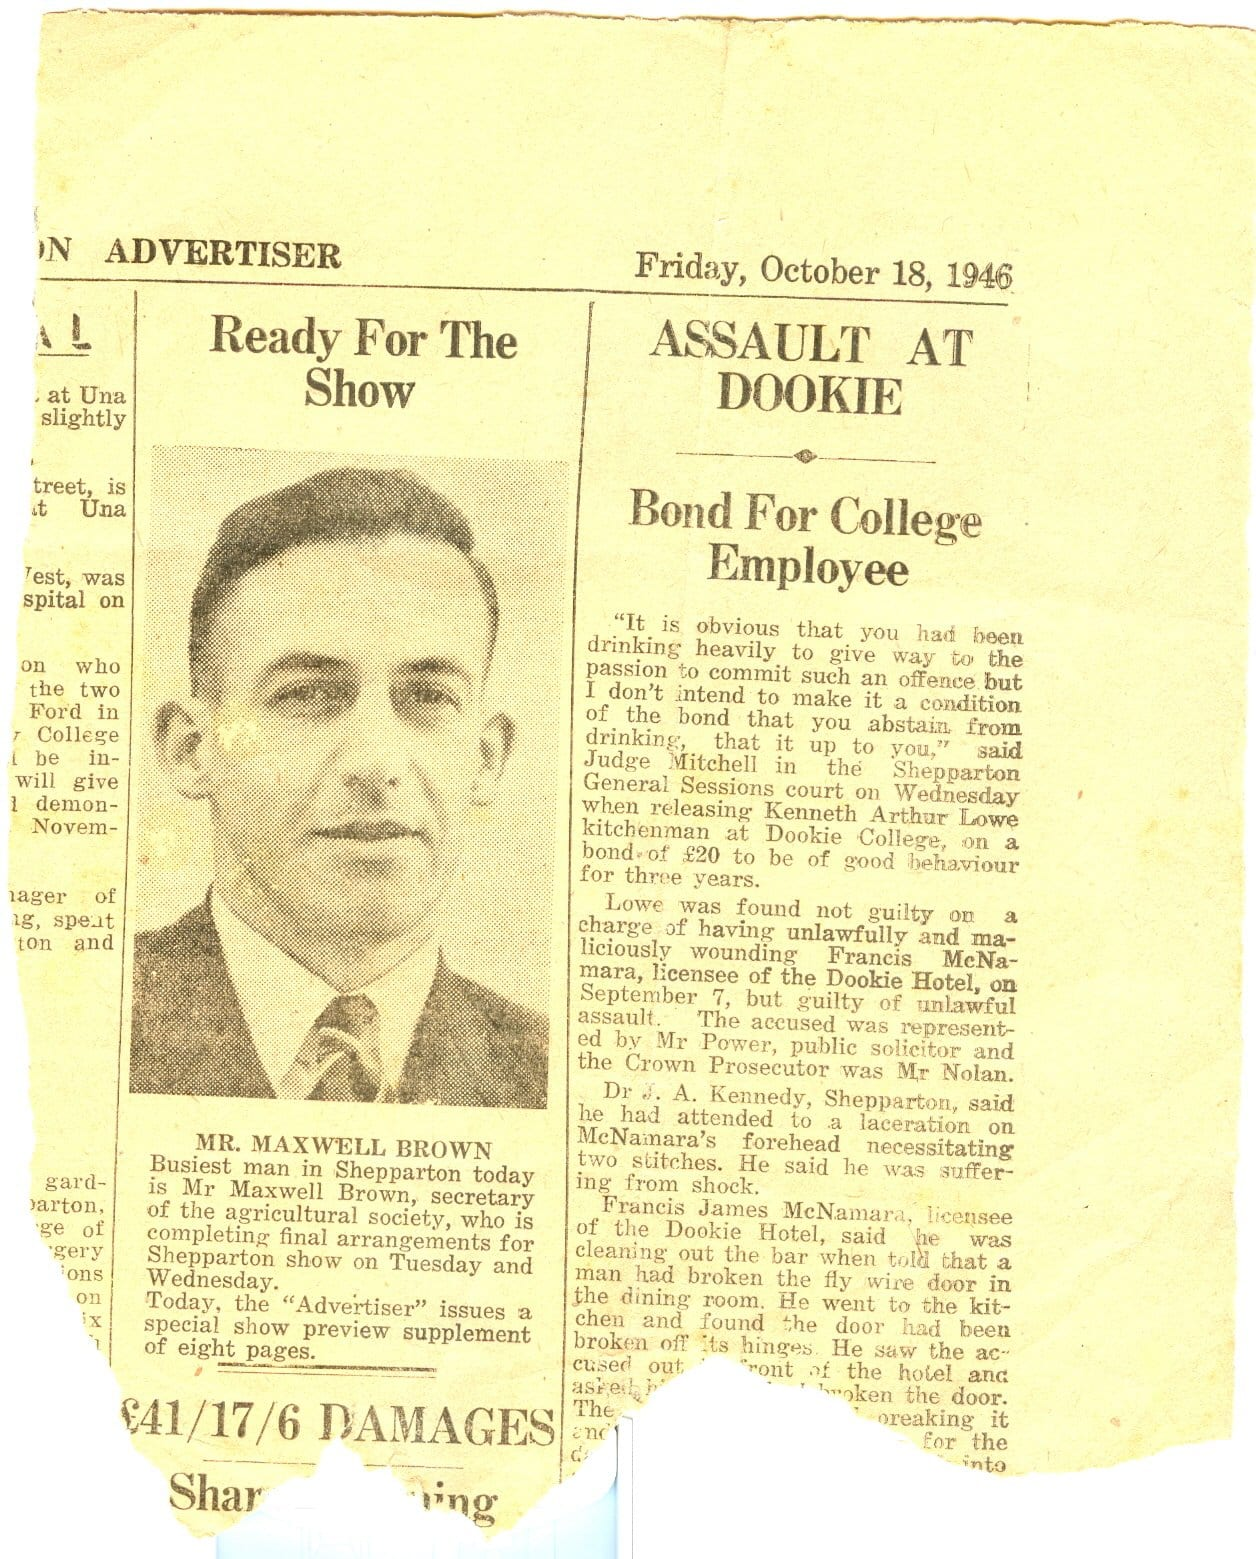 https://www.mbmgroup.com.au/wp-content/uploads/2016/10/Max-newspaper-article-1946.jpg